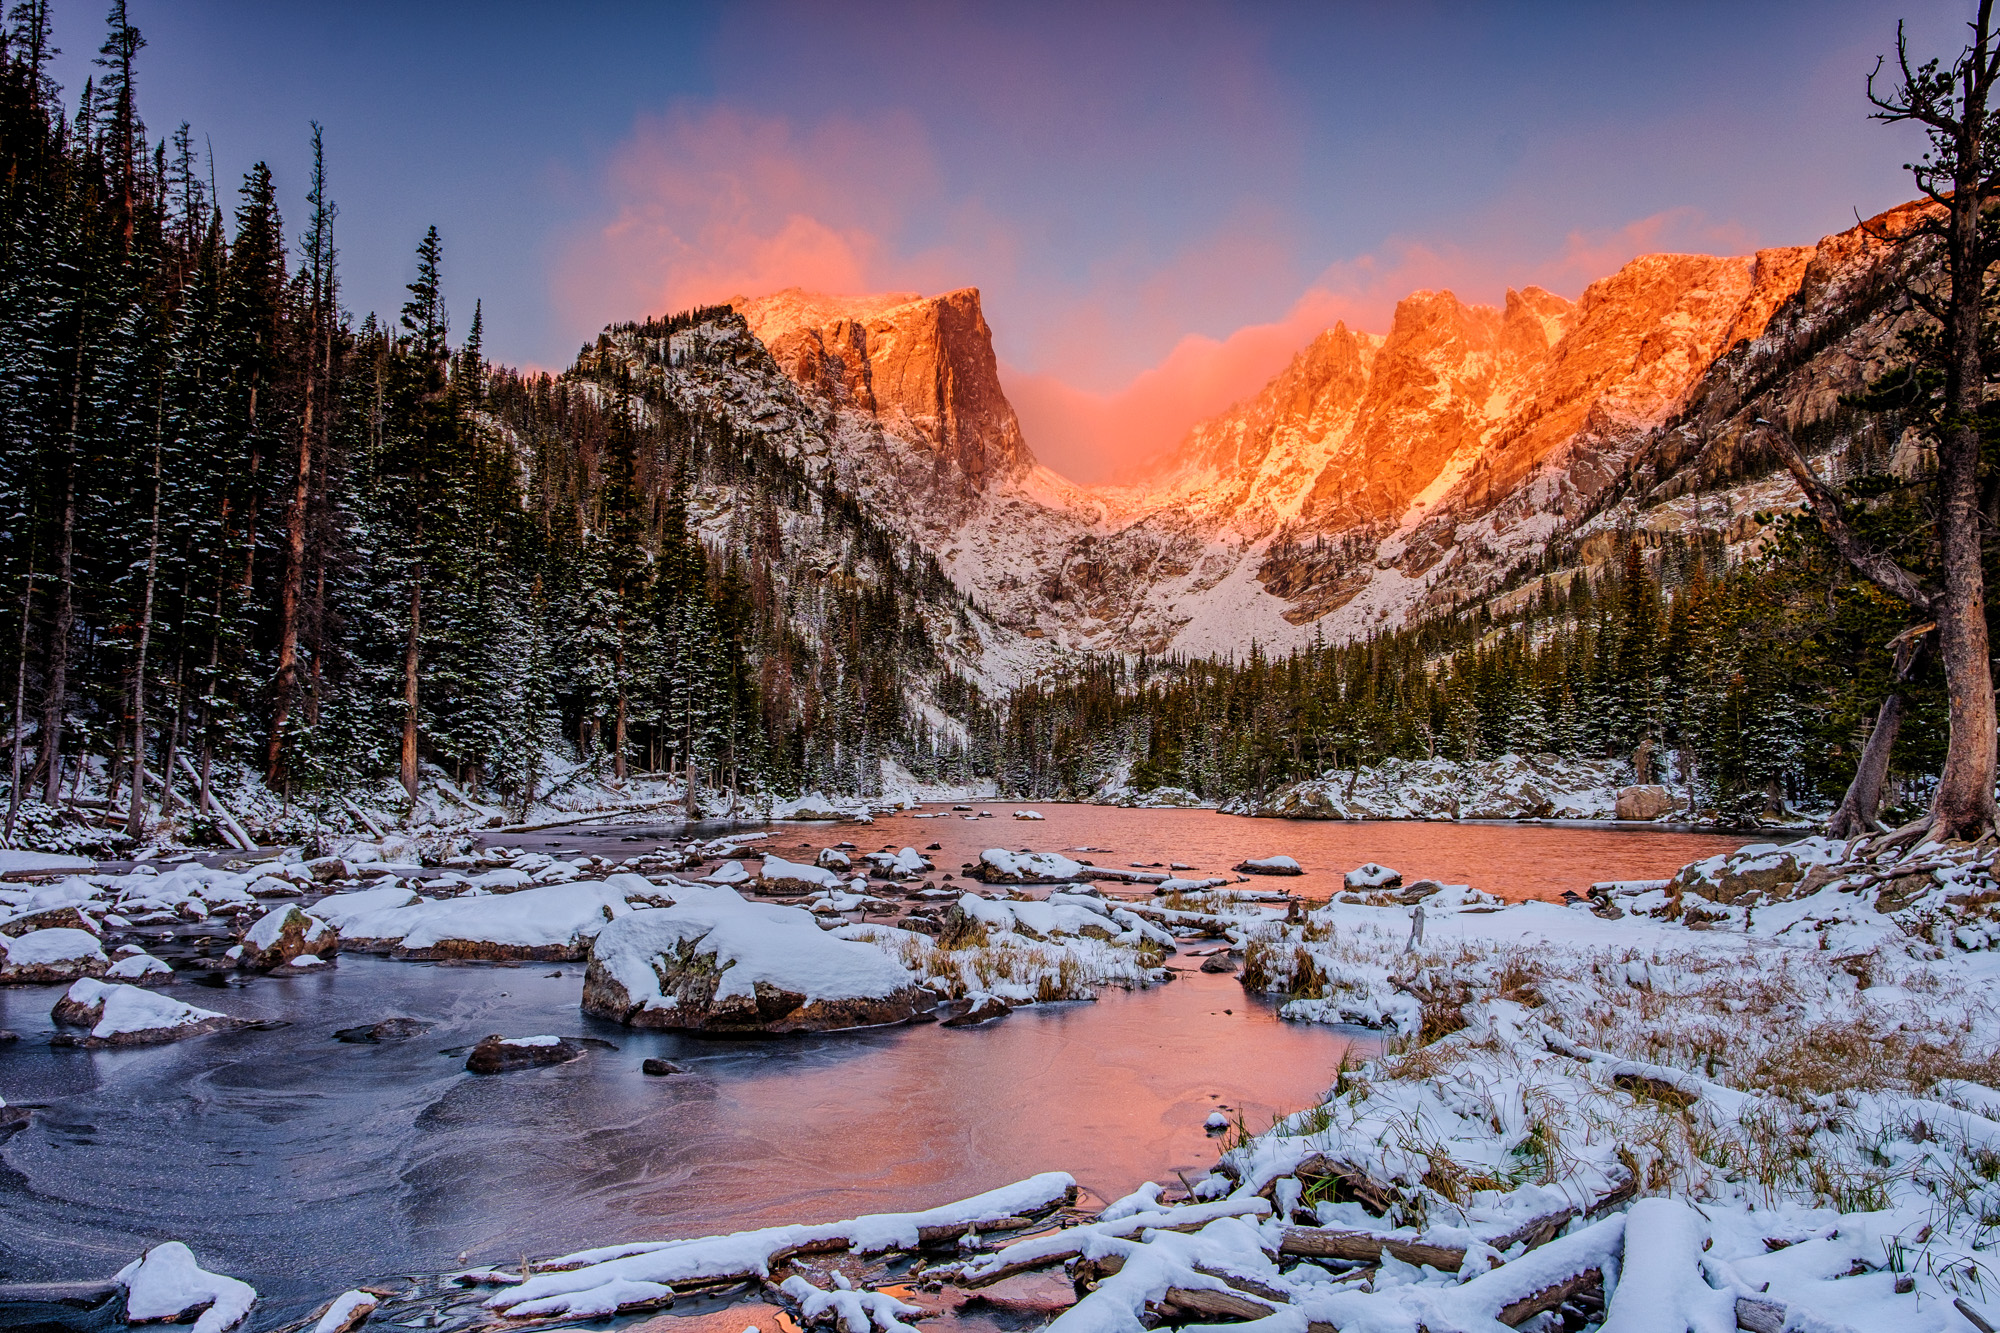 Fall Mountain Scenery Wallpaper Rocky Mountain National Park The Greatest American Road Trip